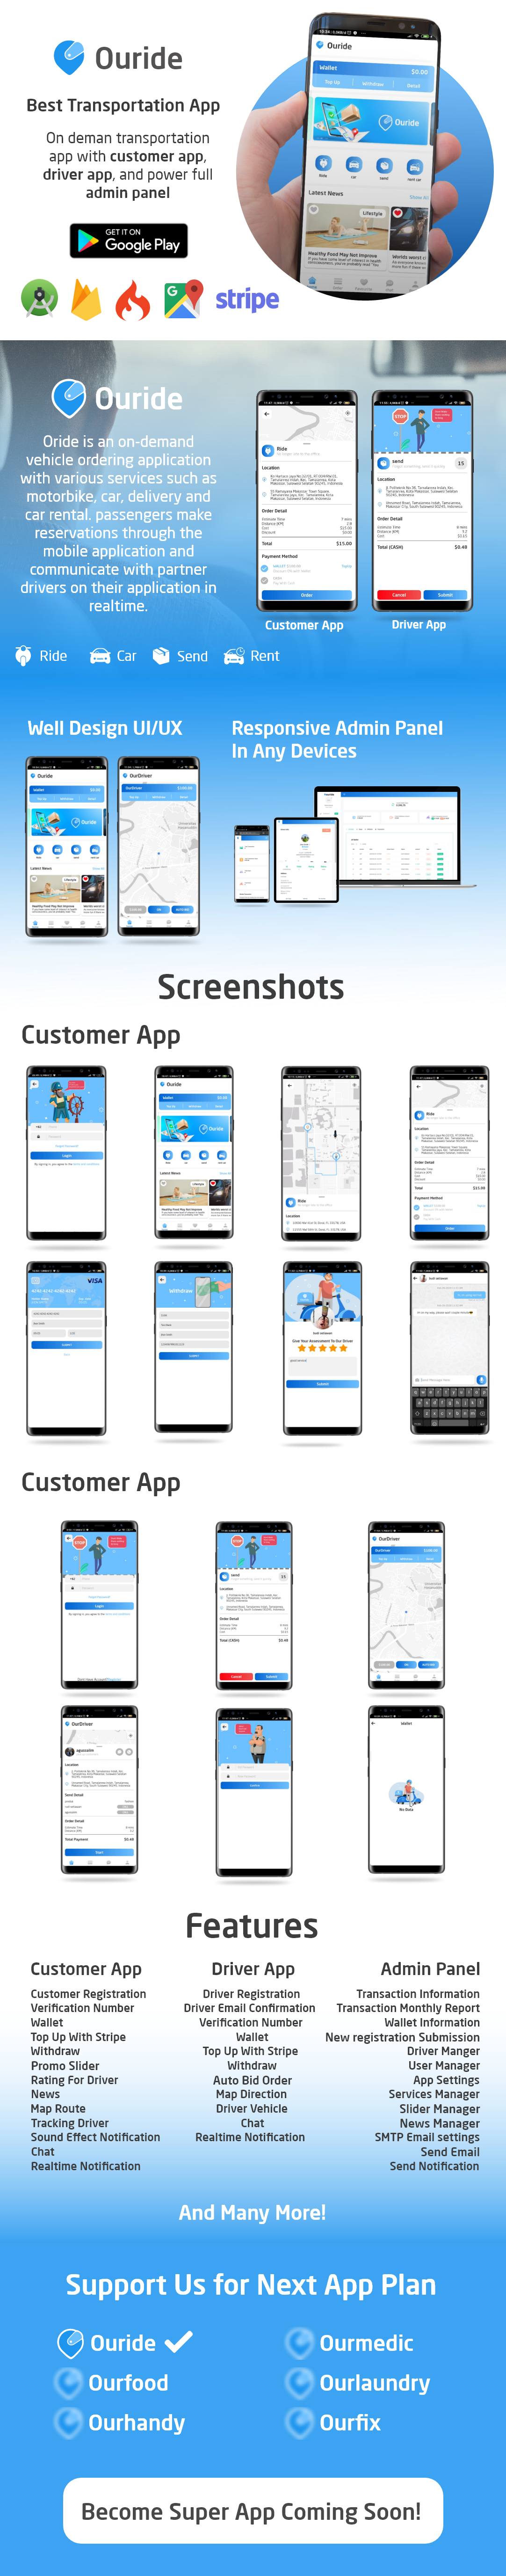 Ouride - Transportation App With Customer App, Driver App, and Admin Panel - 2